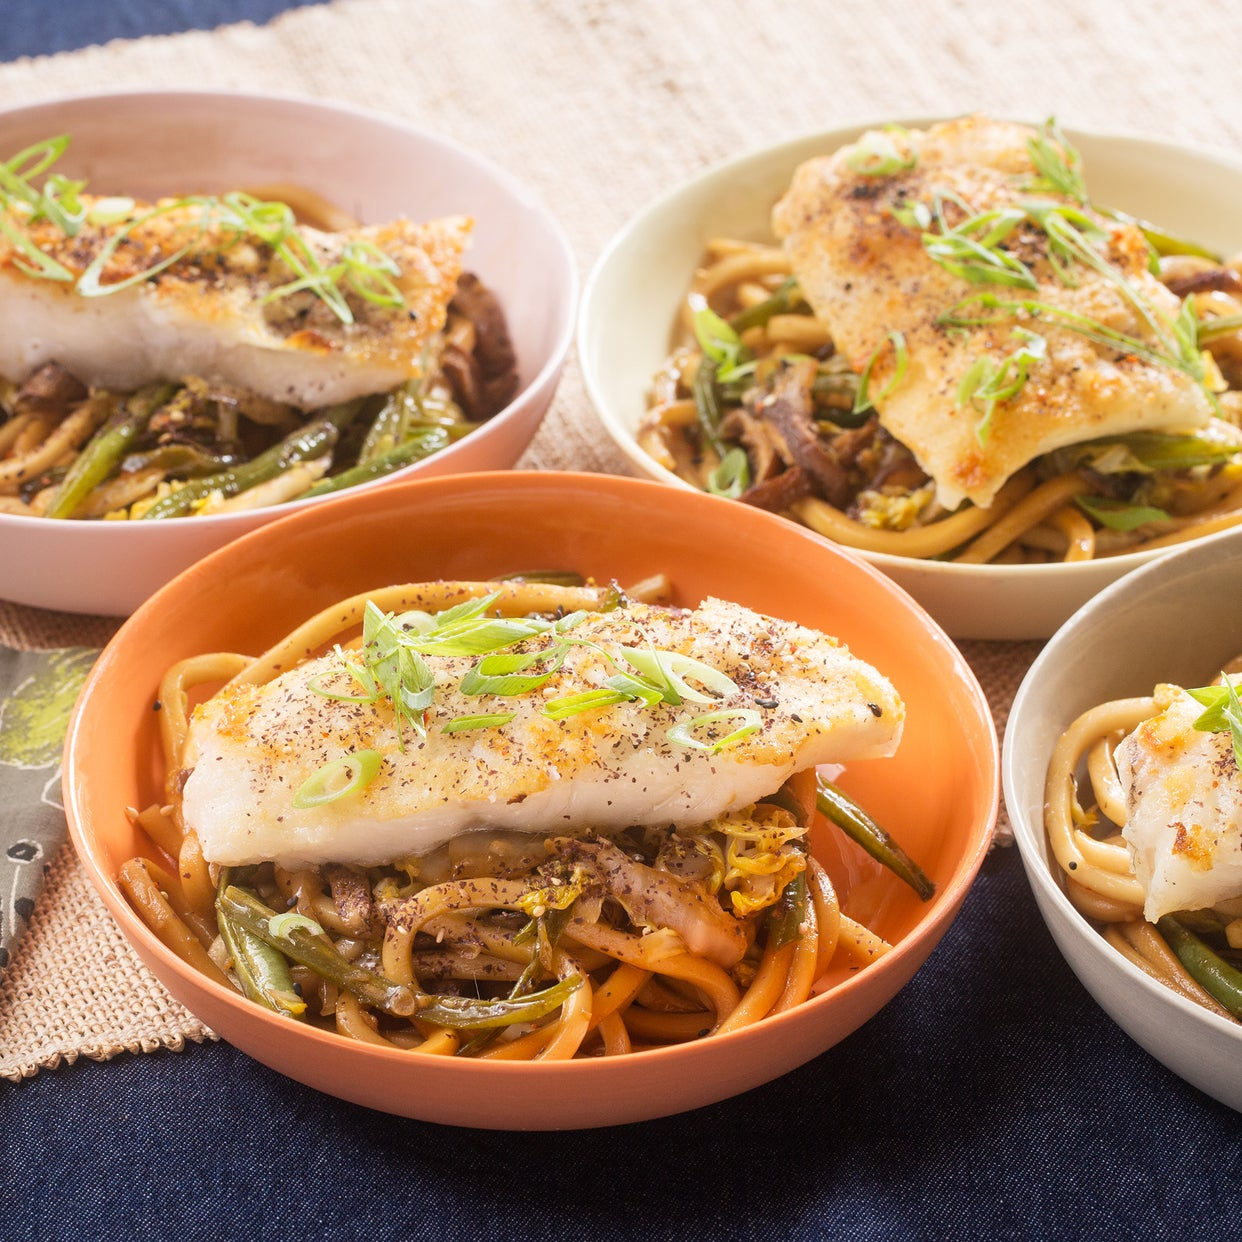 Seared Cod & Fresh Udon Noodles with Shiitake Mushrooms, Green Beans & Furikake